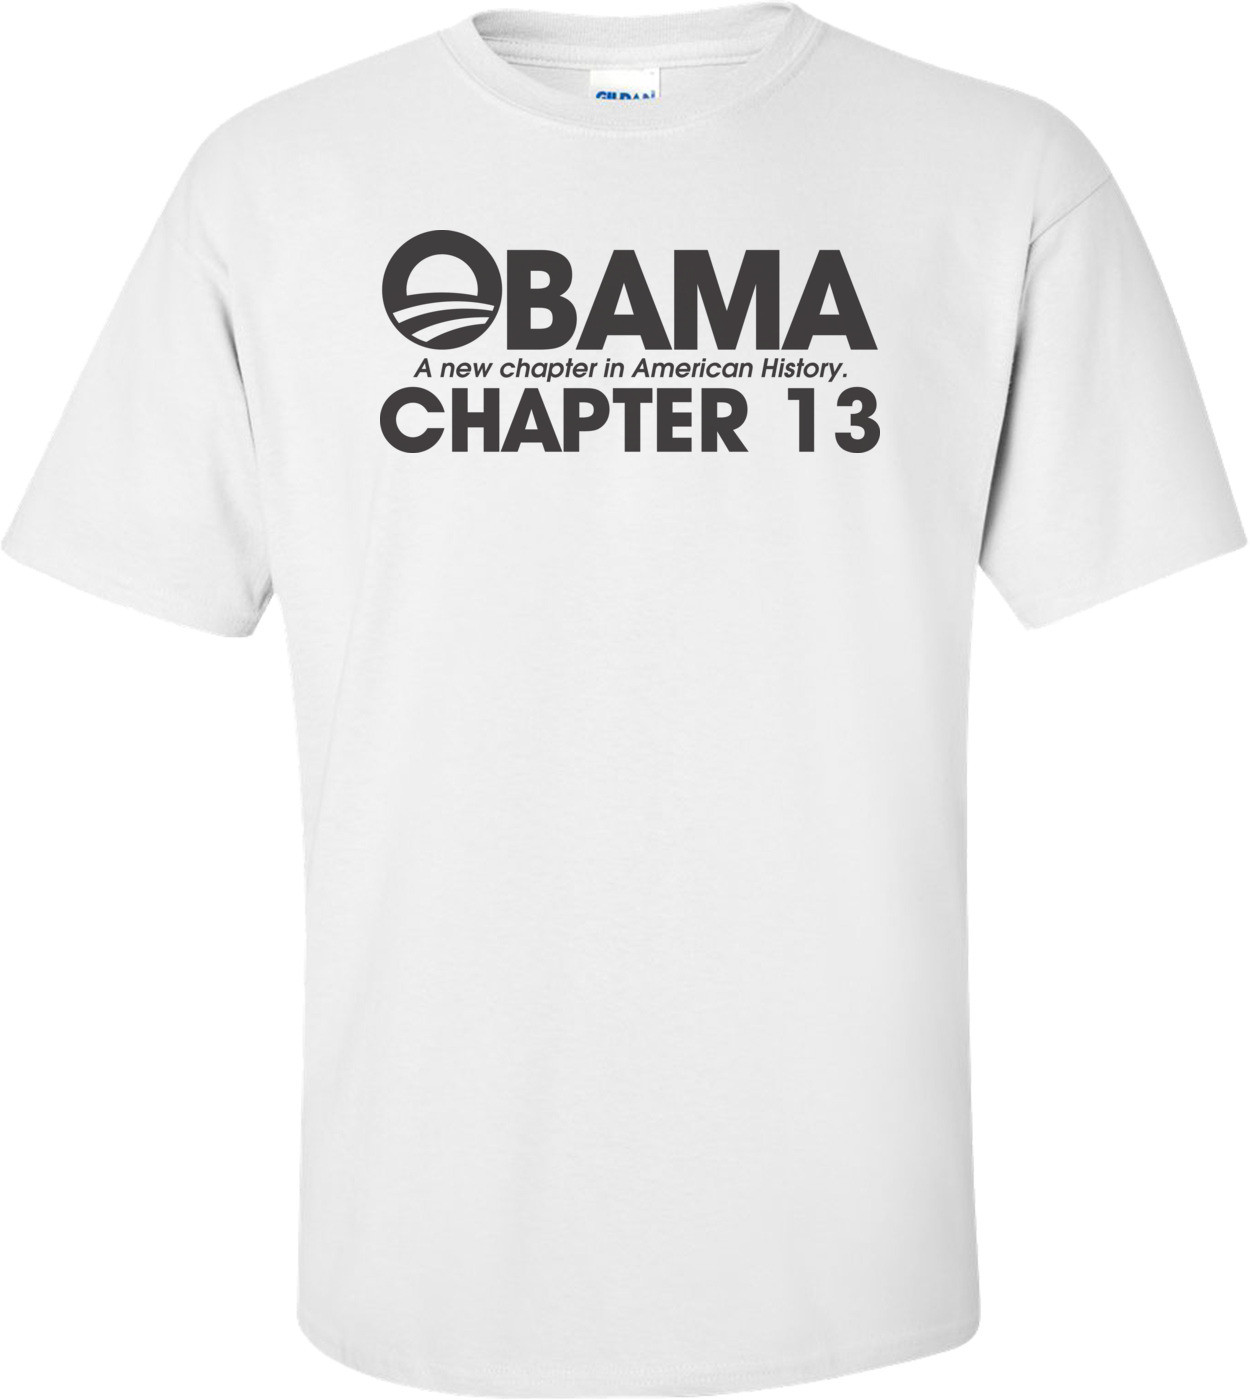 Obama A New Chapter In American History Chapter 13 Anti Obama T-shirt